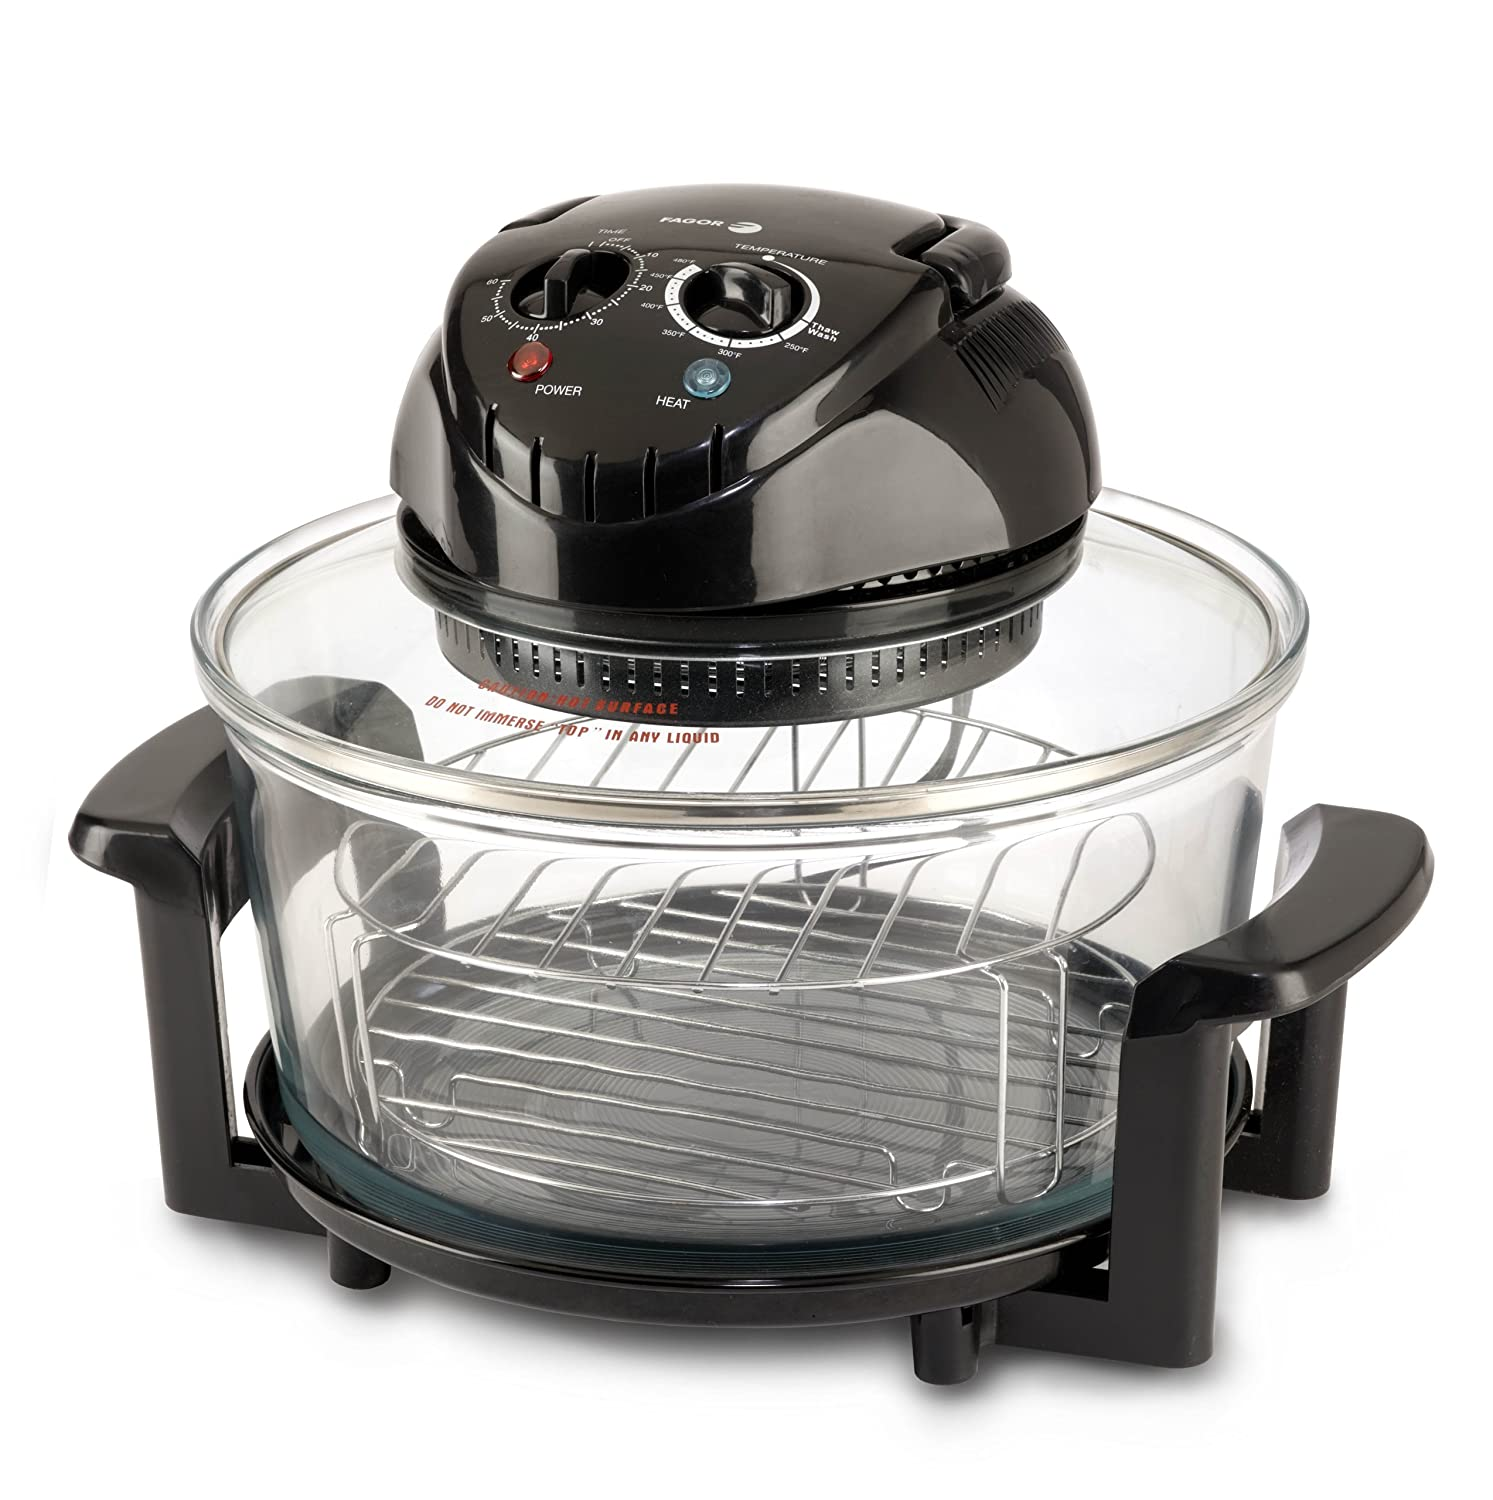 Cooking In Countertop Convection Oven : Fagor 12 Quart Halogen Tabletop Oven Check Price Fagor 12 Quart has a ...